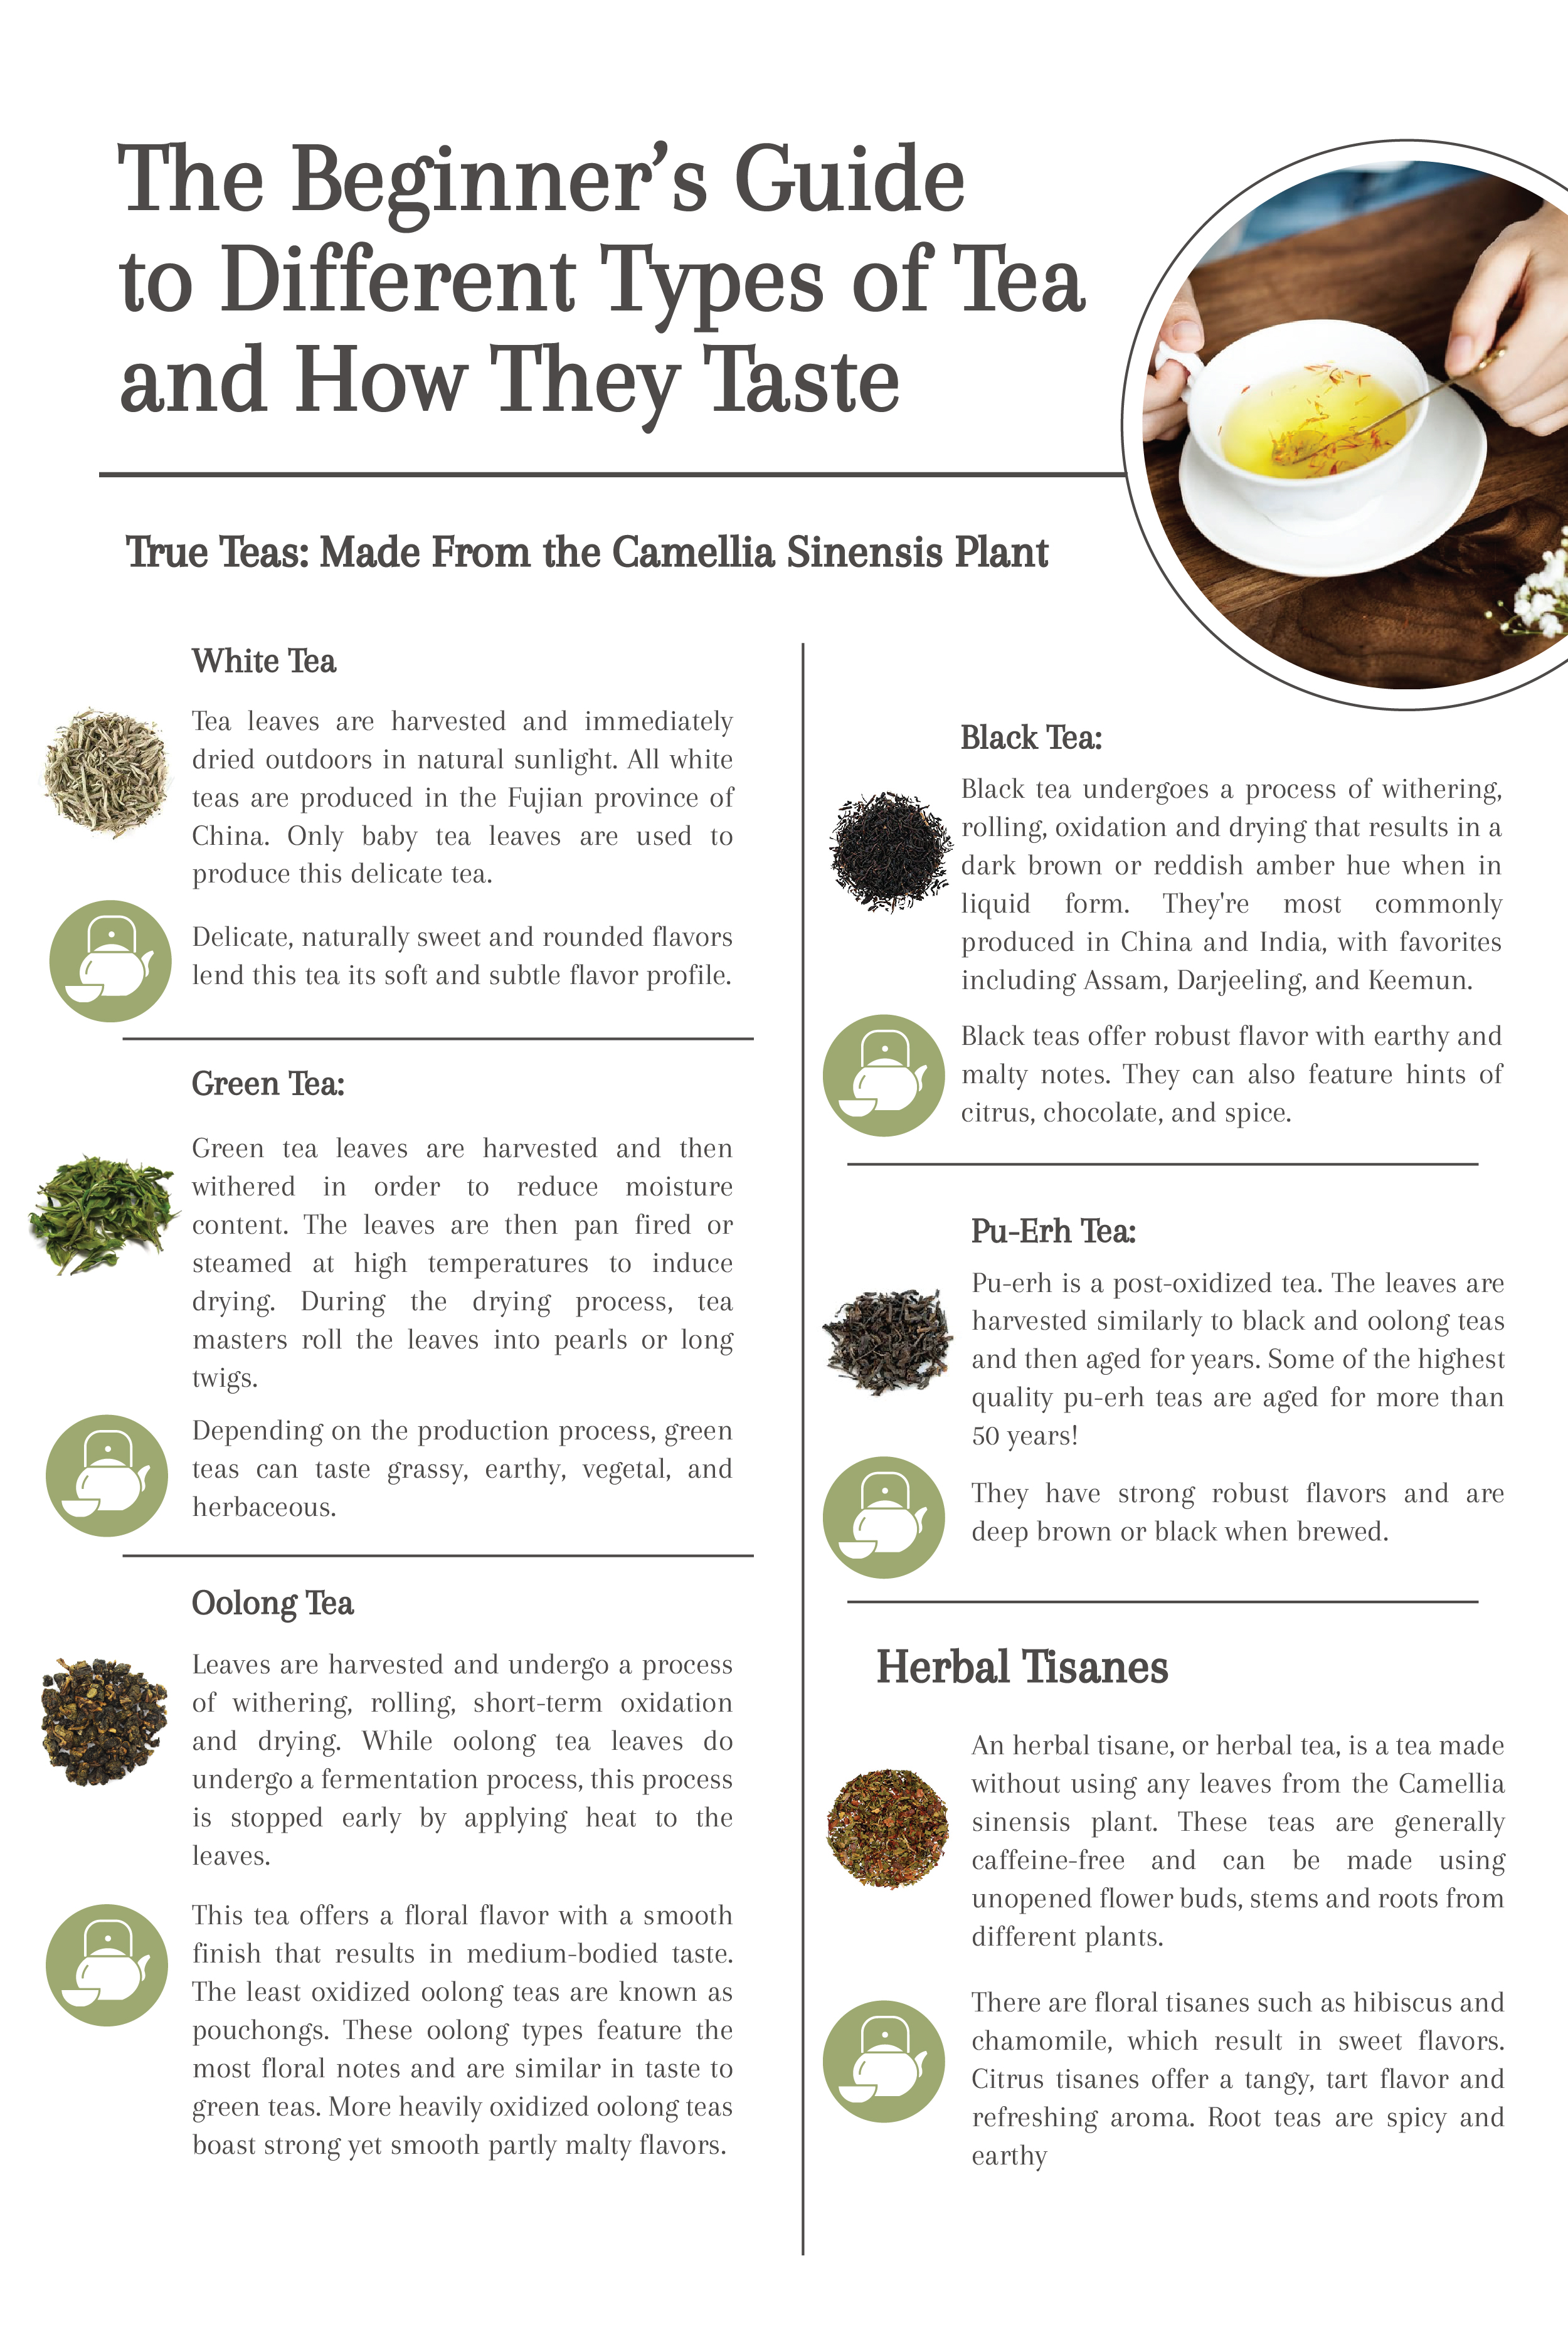 The Beginner's Guide to Different Types of Tea and How They